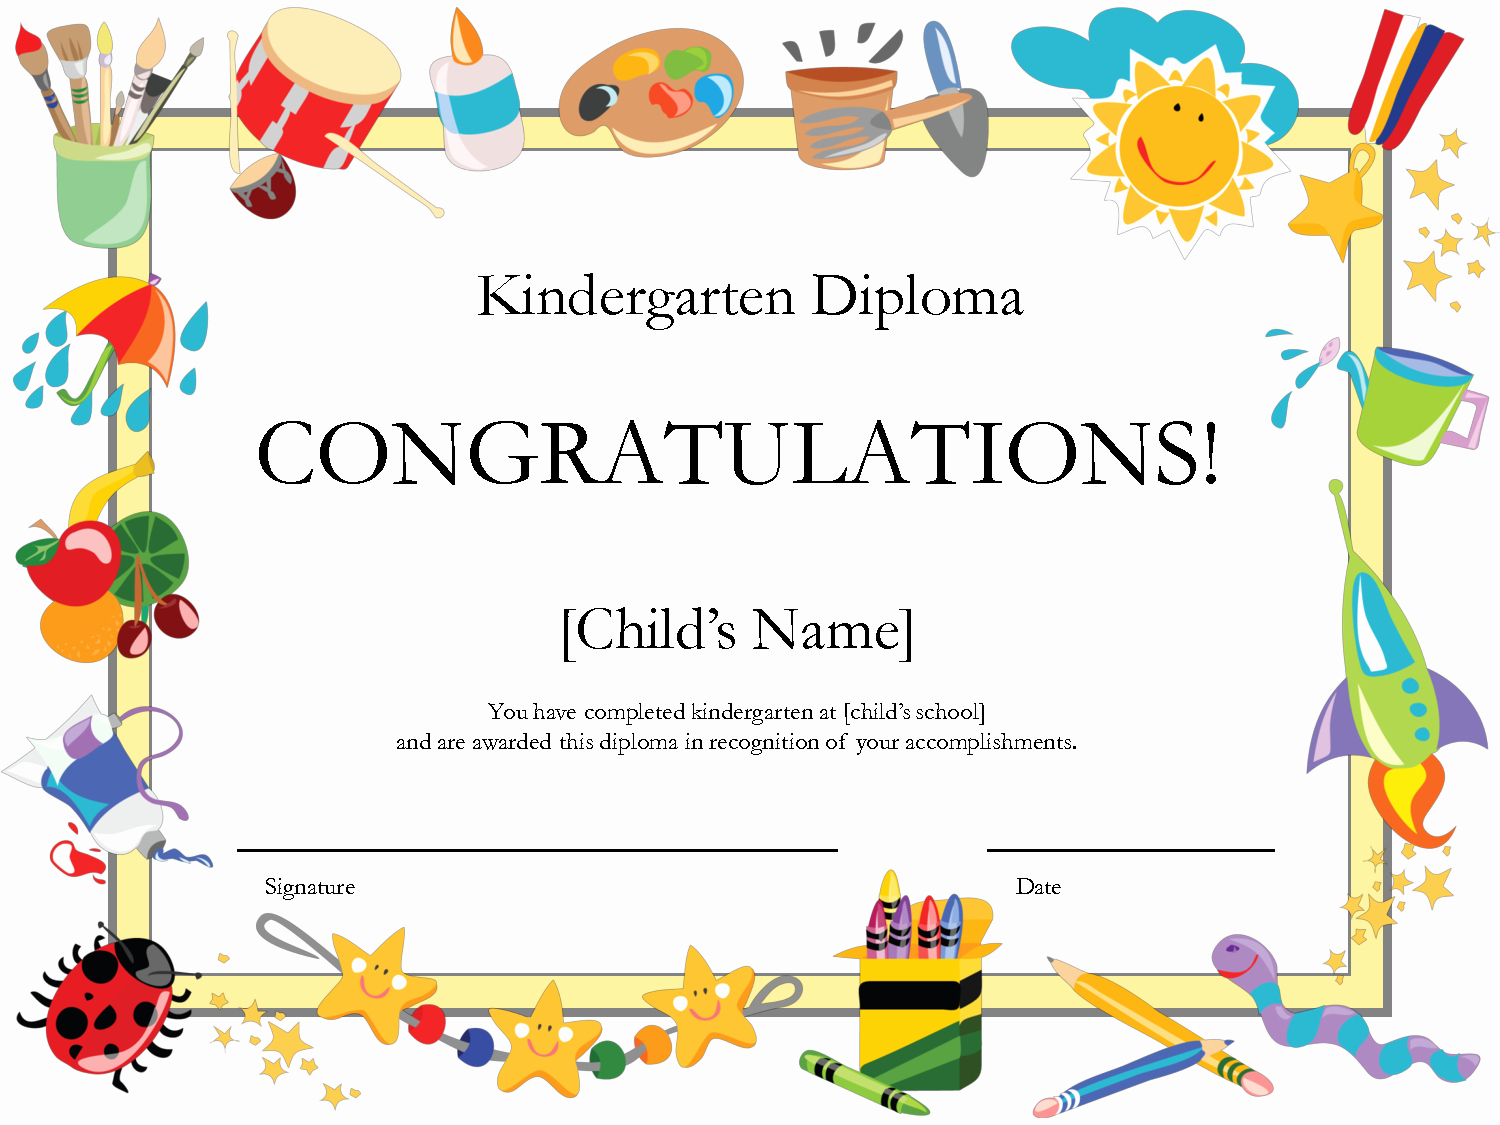 Preschool Graduation Certificate Template Luxury Free Printable Kindergarten Graduation Certificate